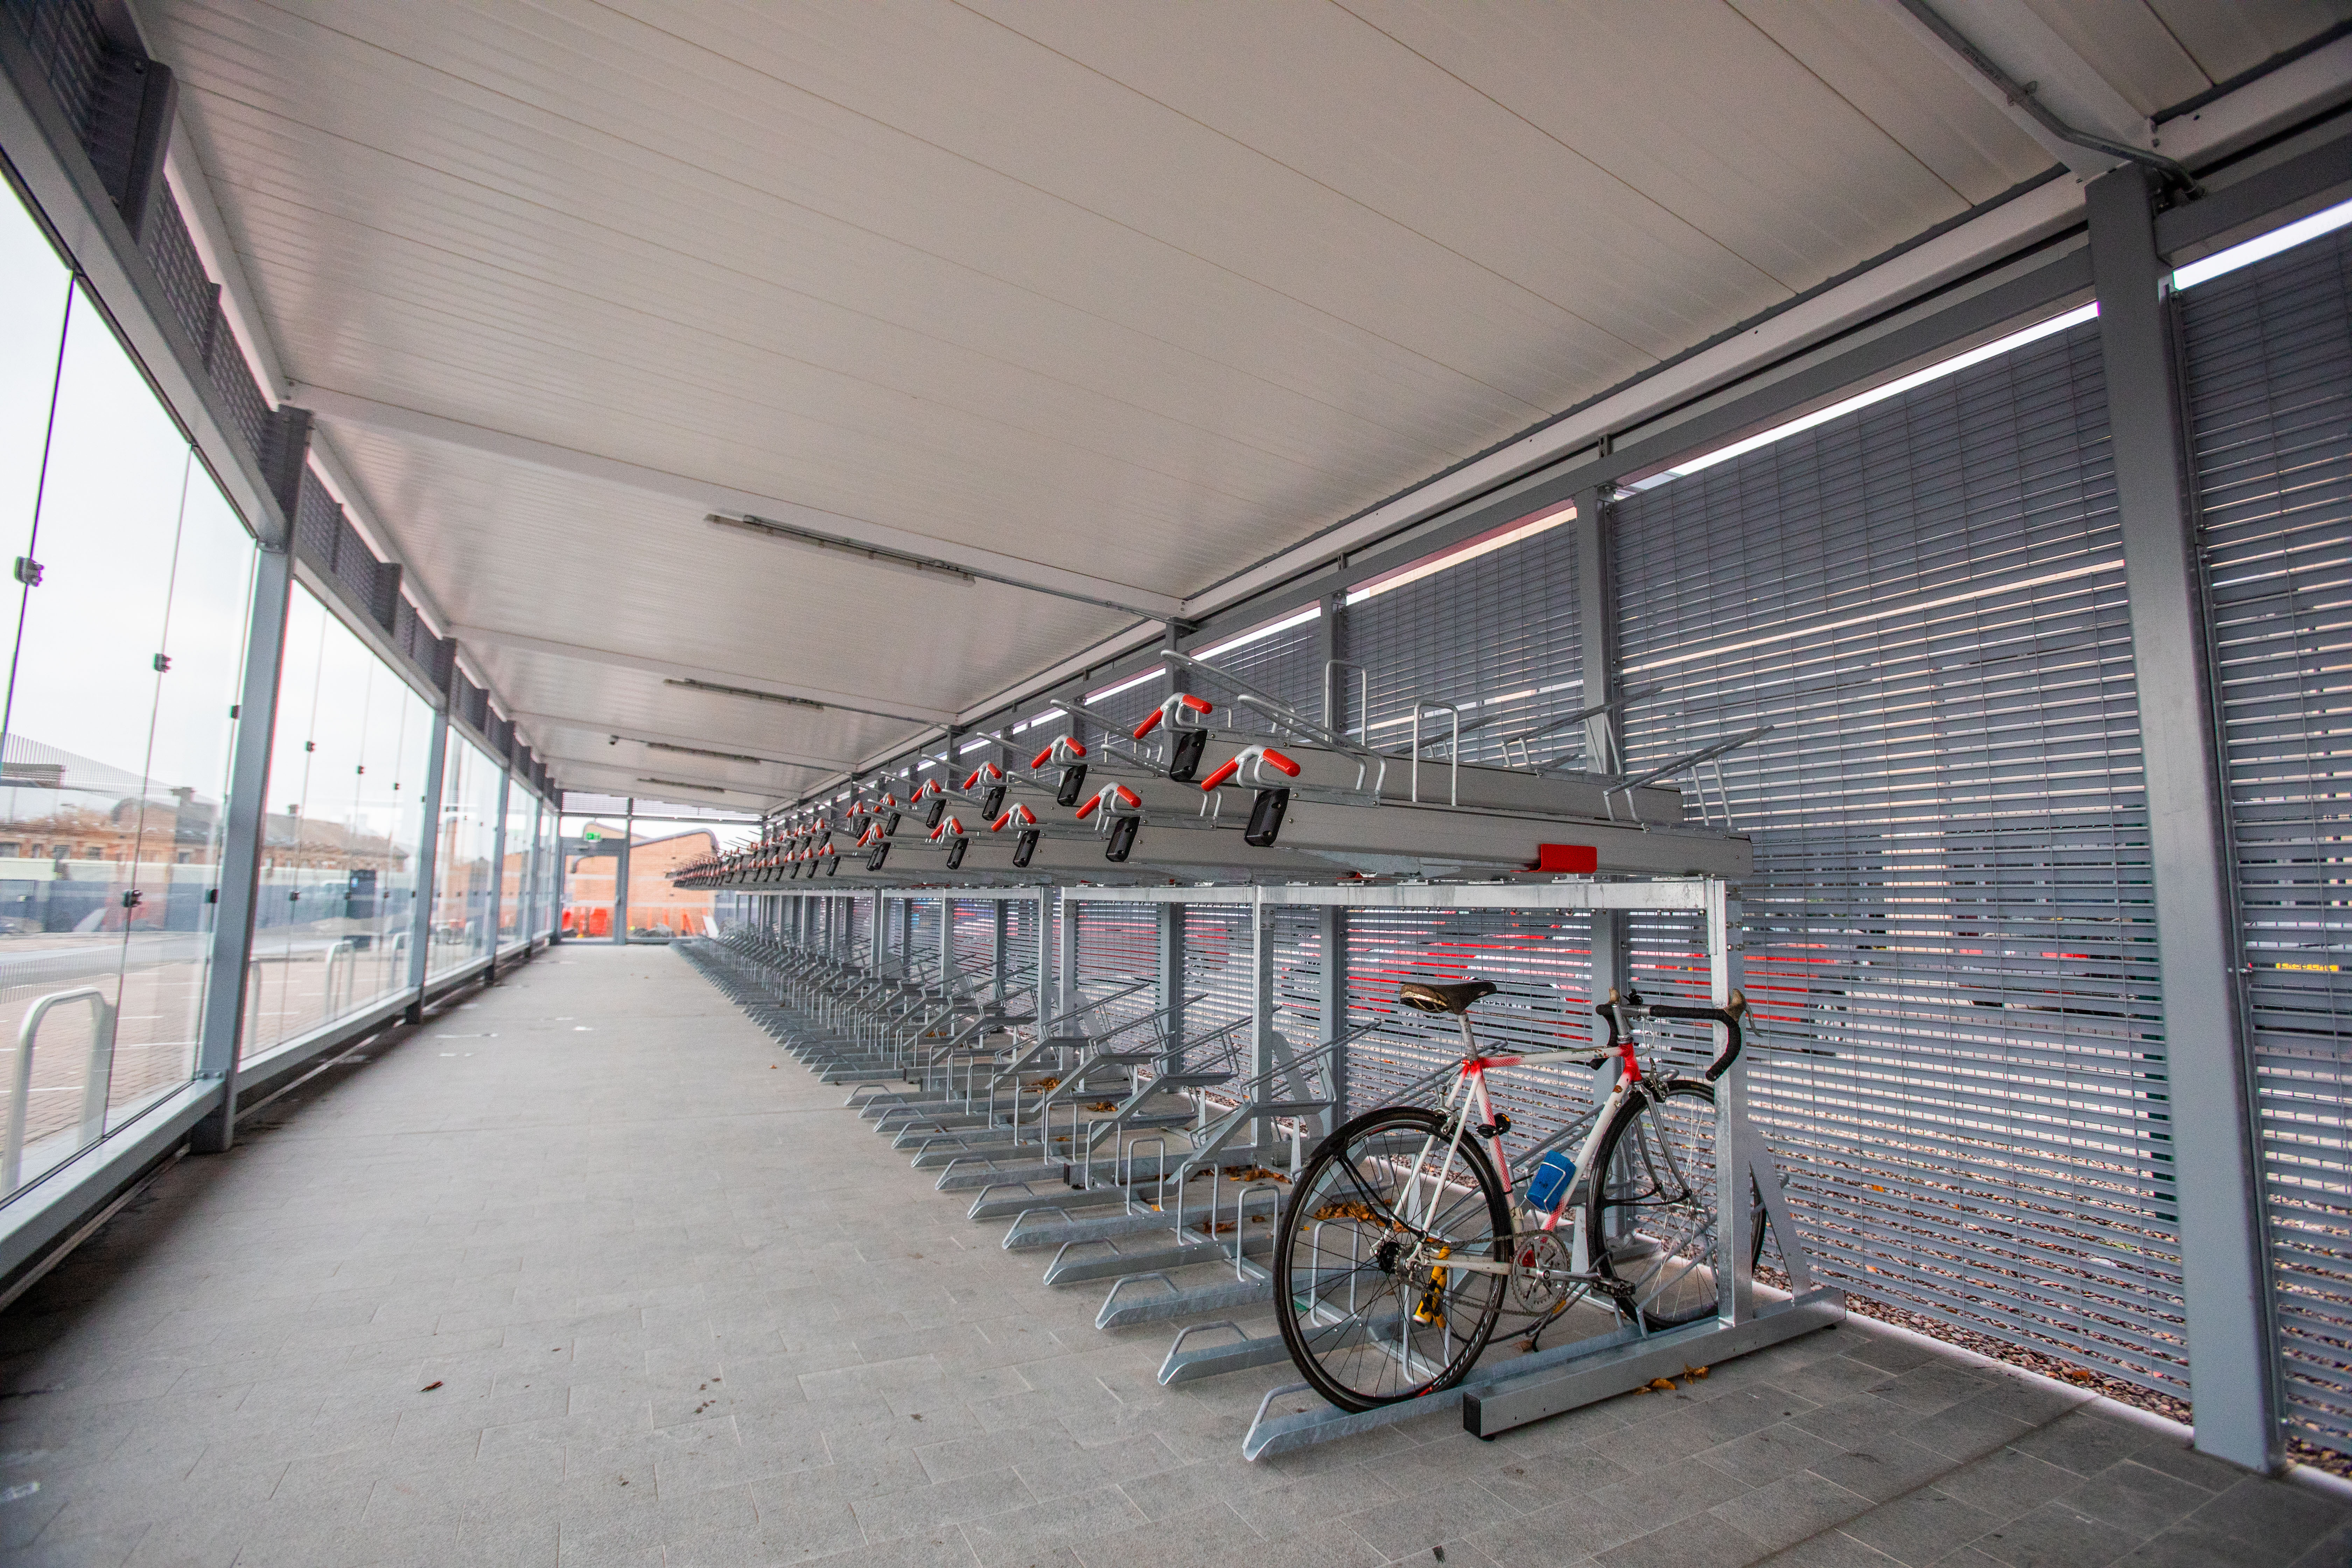 The new cycle parking facility at Dundee Railway Station